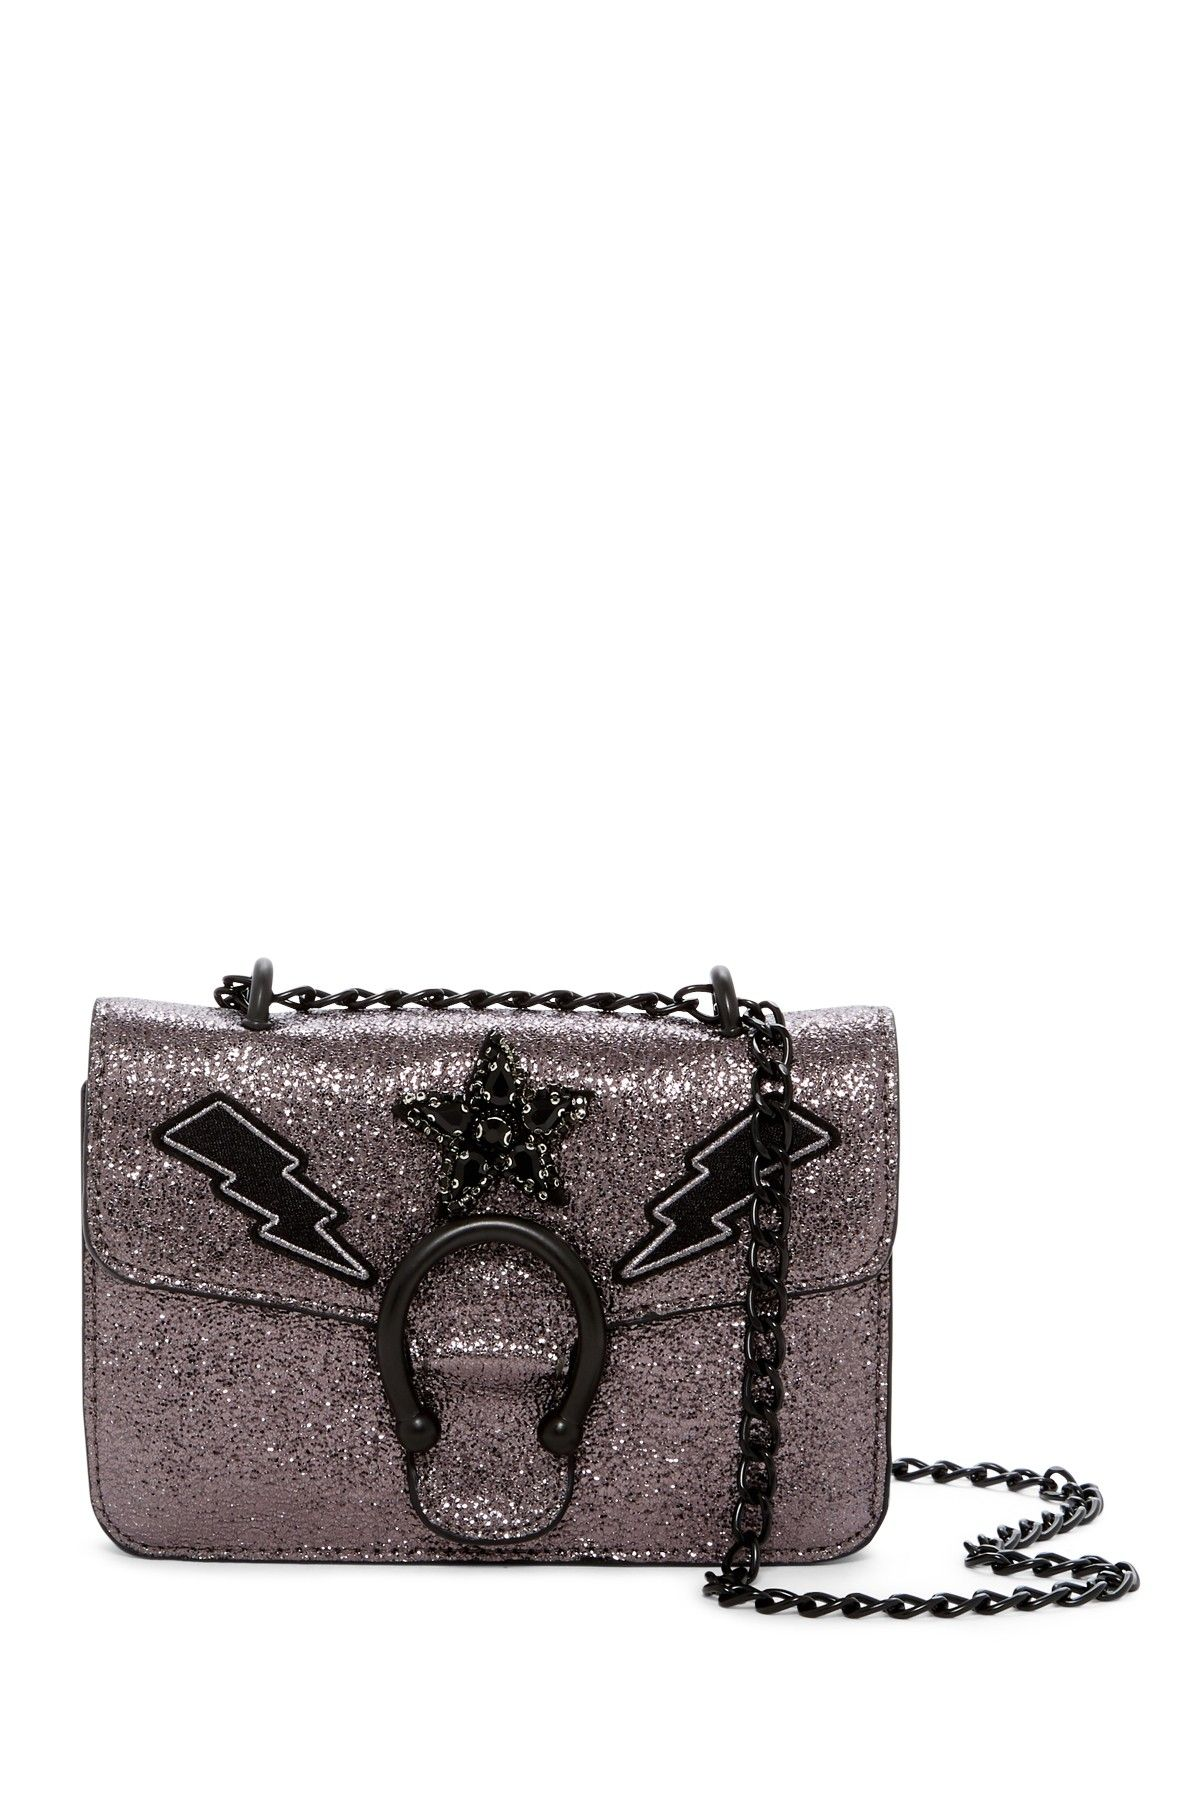 Steve Madden Syra Mini Chain Crossbody Bag  97164e4e61380